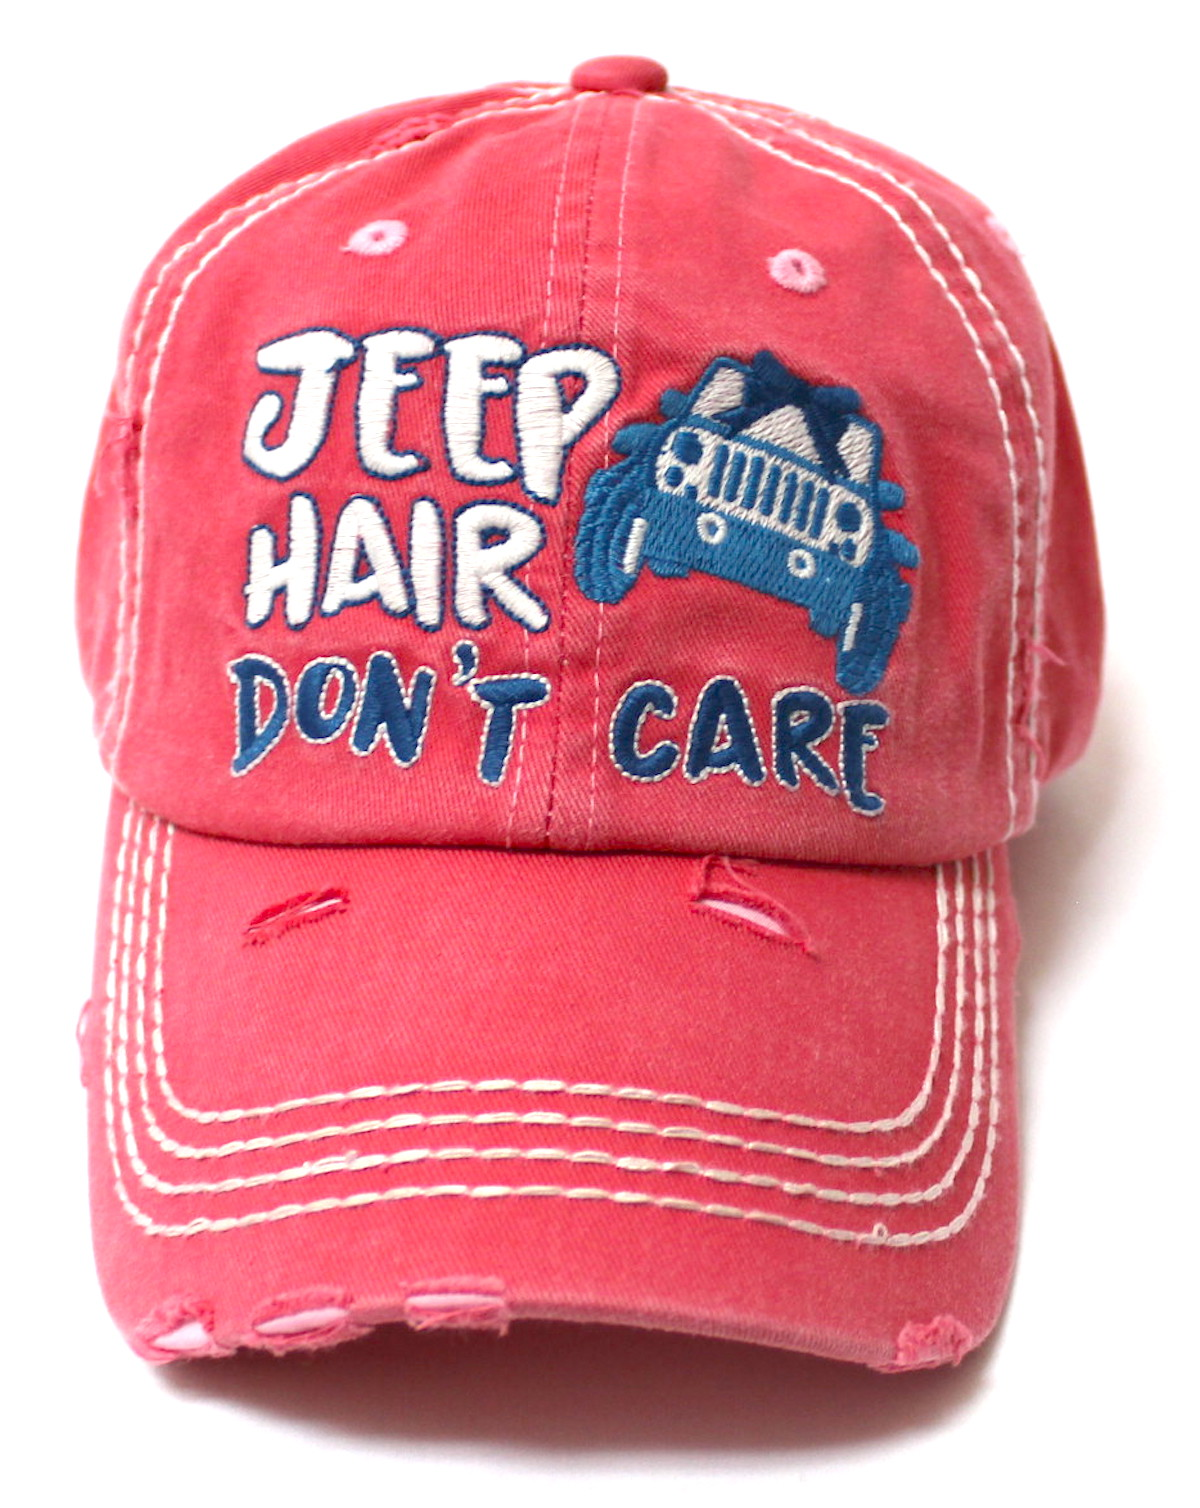 CuteJeep_Pin_Front